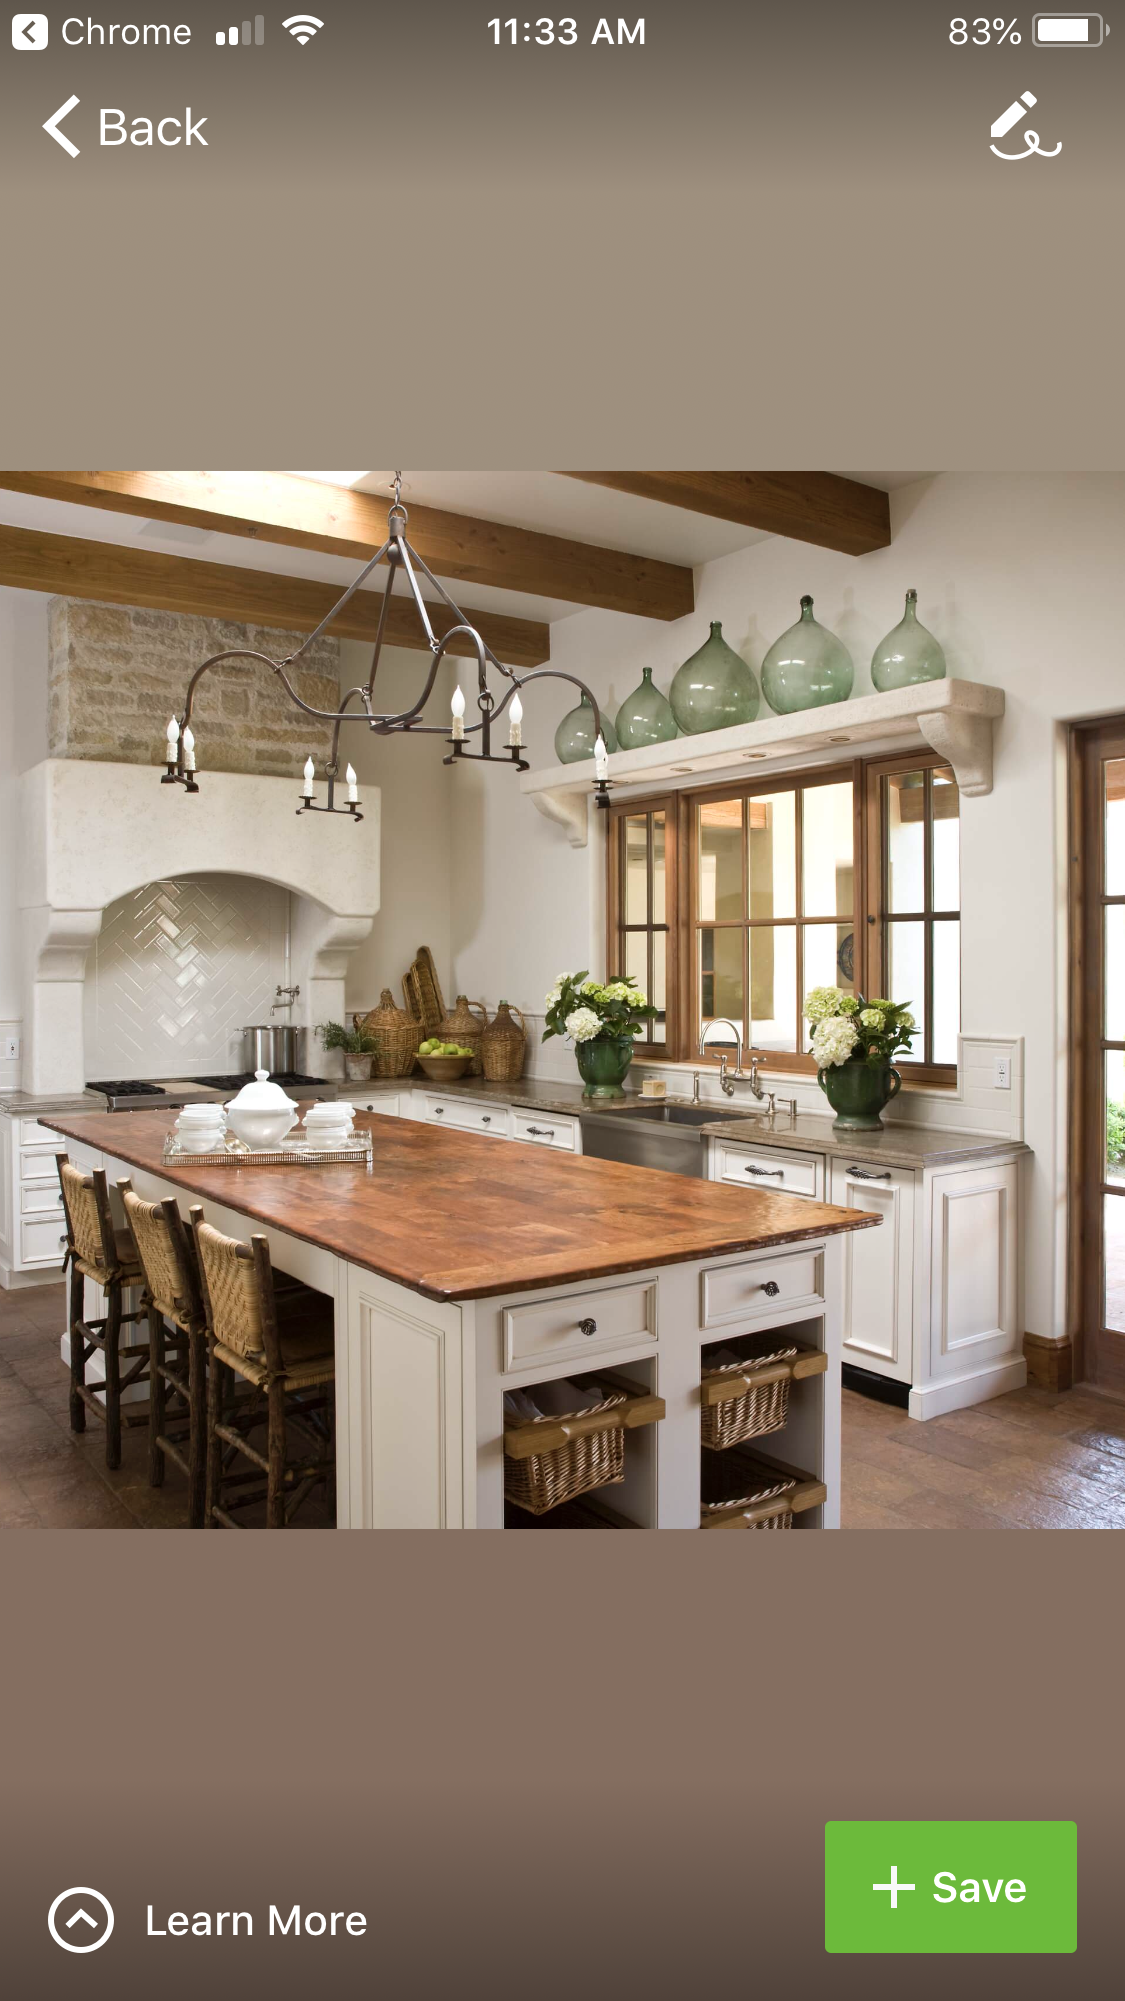 Pin by Nancy Walsh on Wood Trim and White Cabinets ...